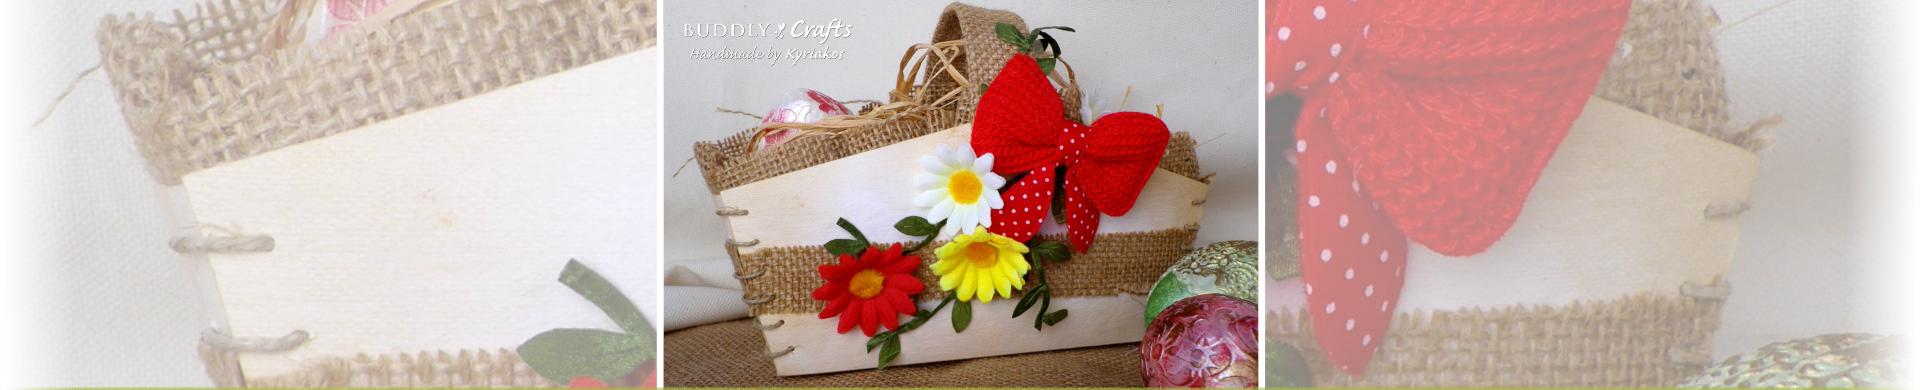 Kraft-Tex Easter Basket